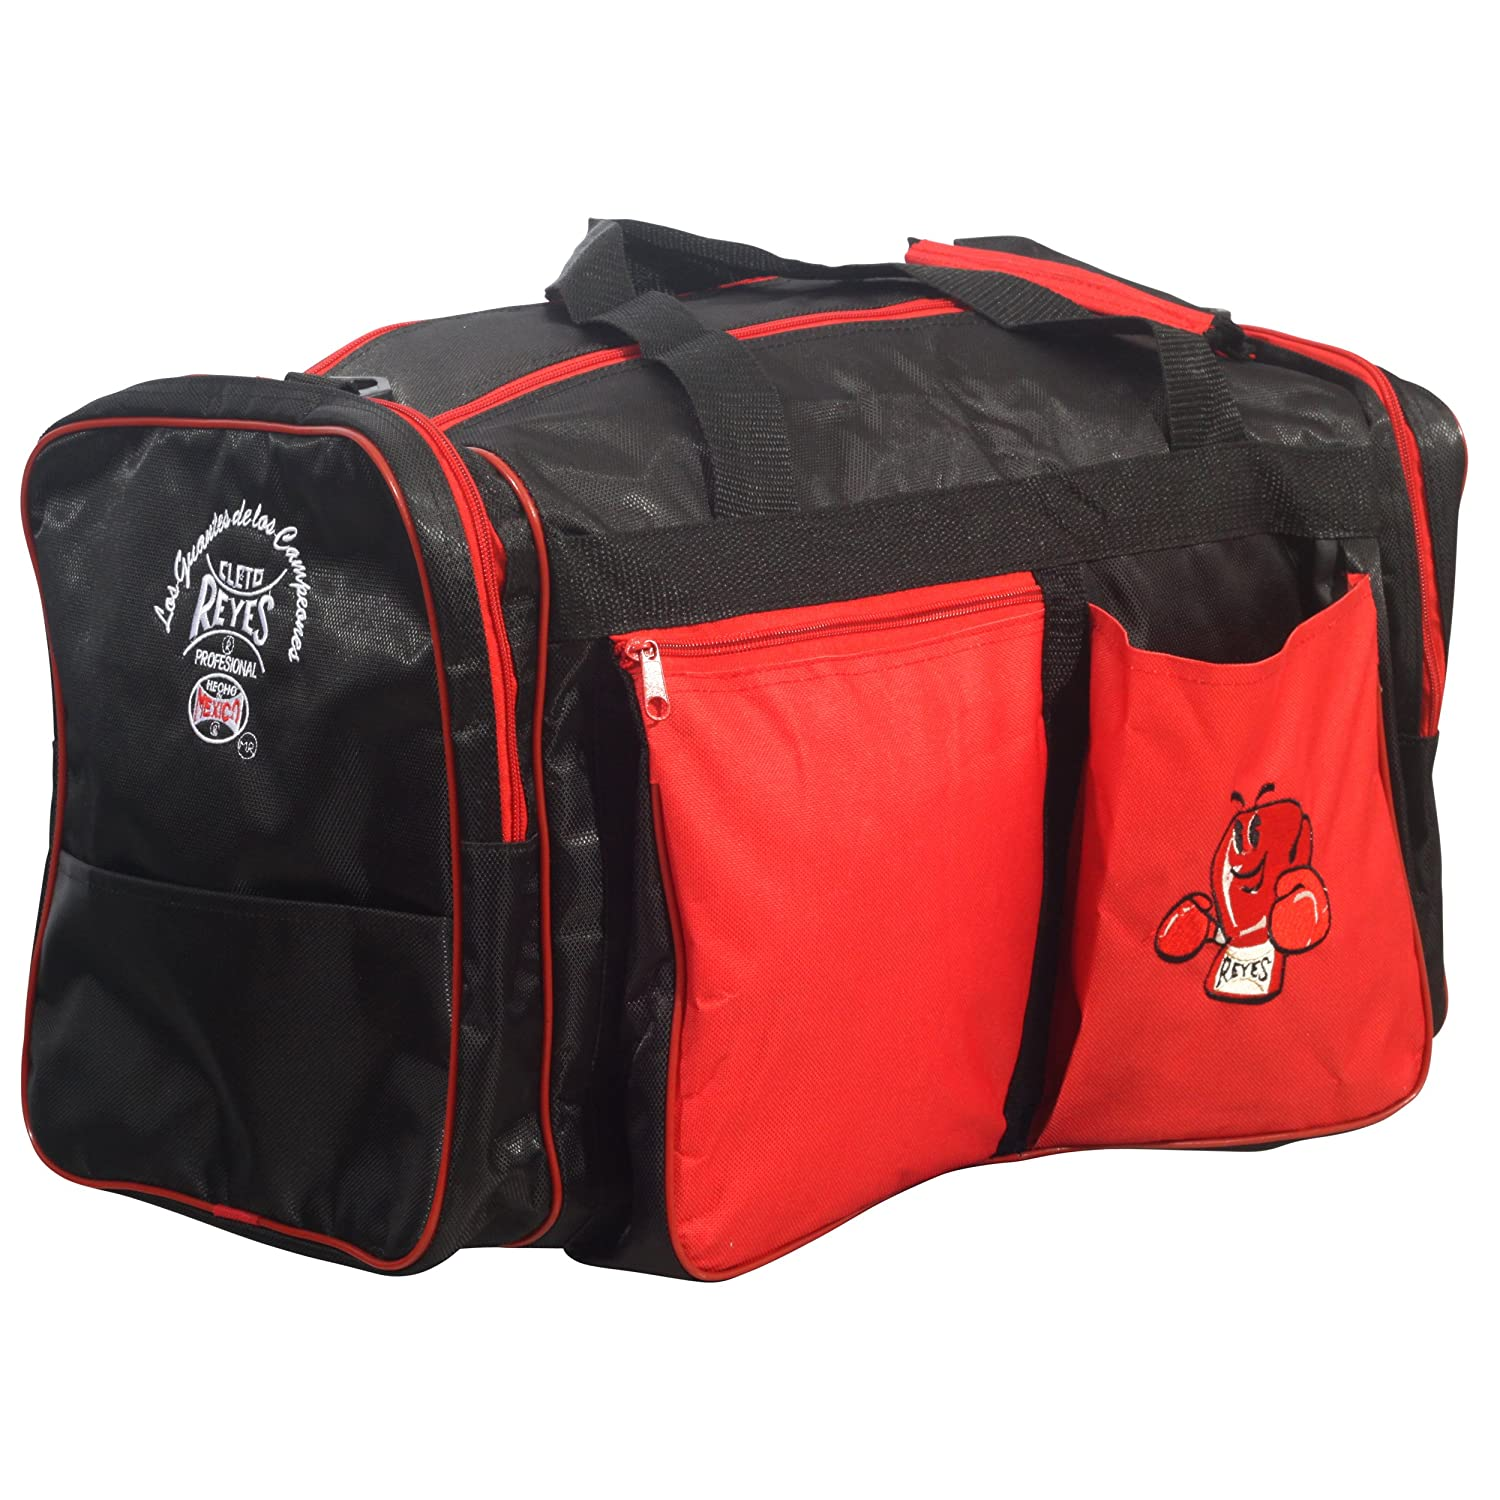 Ringside Cleto Reyes Gym Bag, One size REBB1